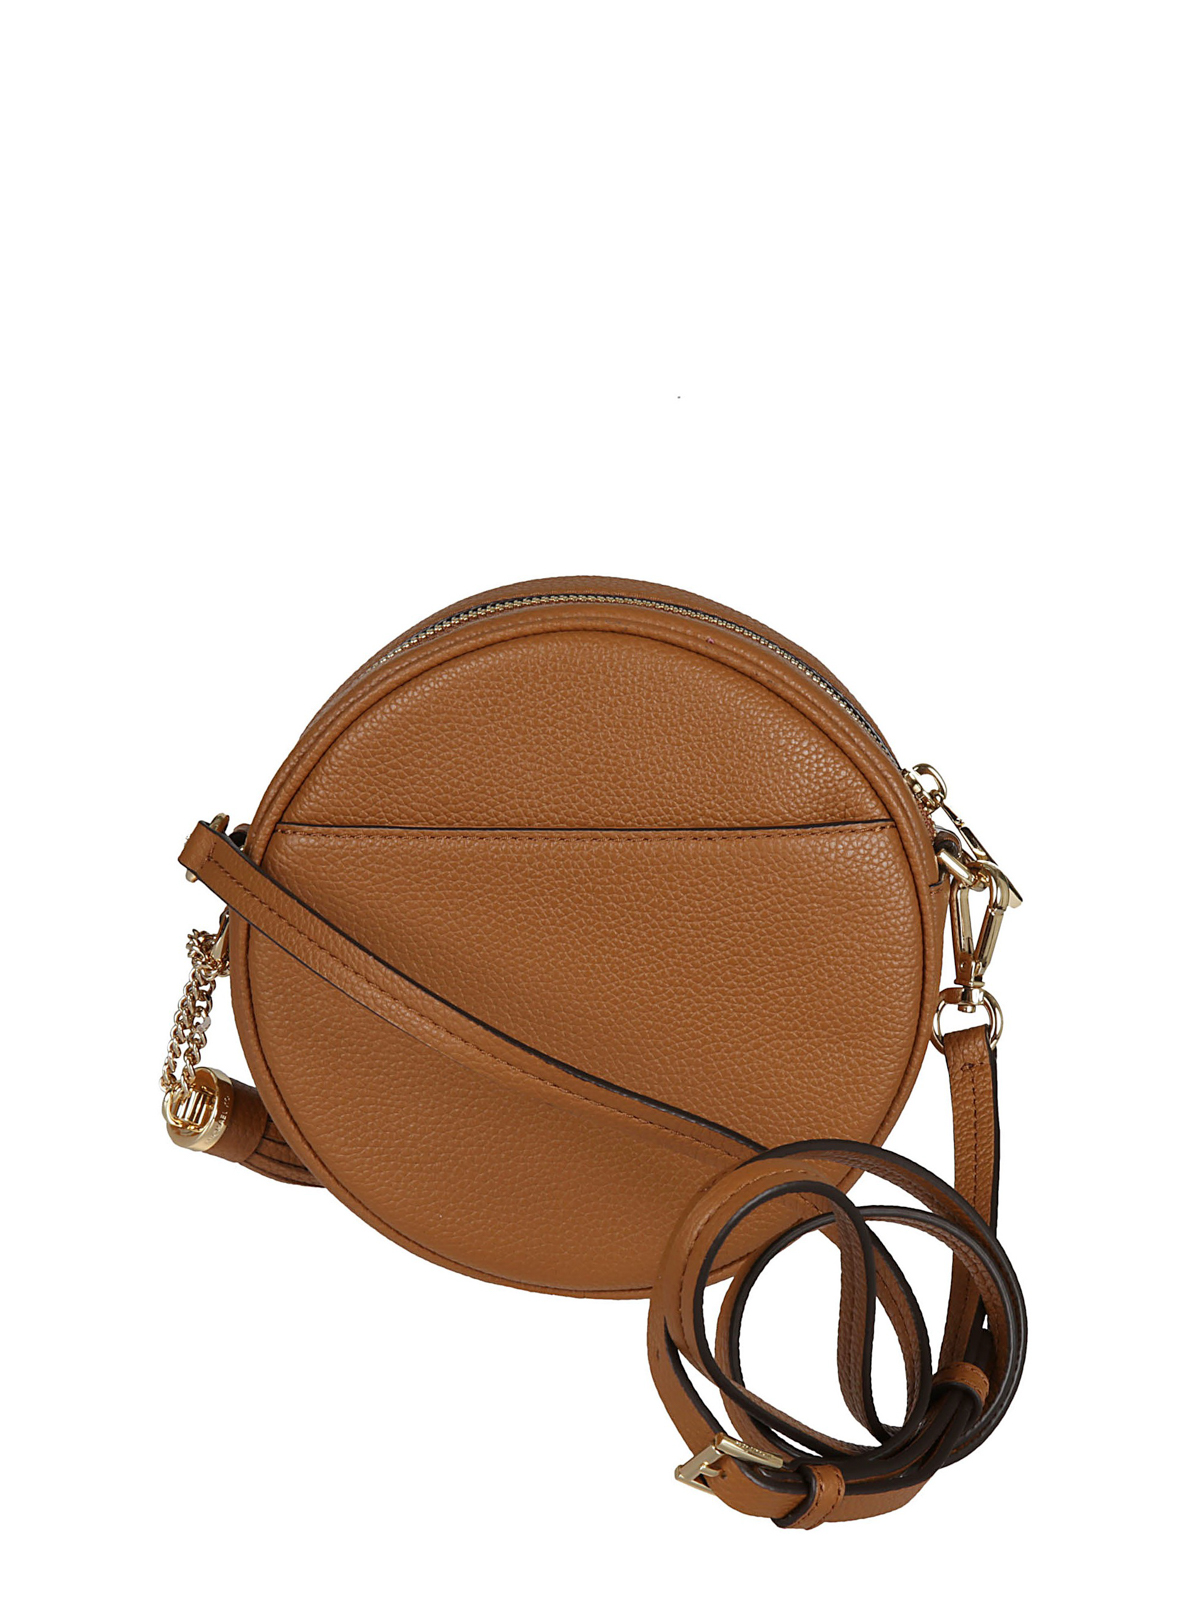 iKRIX MICHAEL KORS  cross body bags - Grainy leather round cross body bag